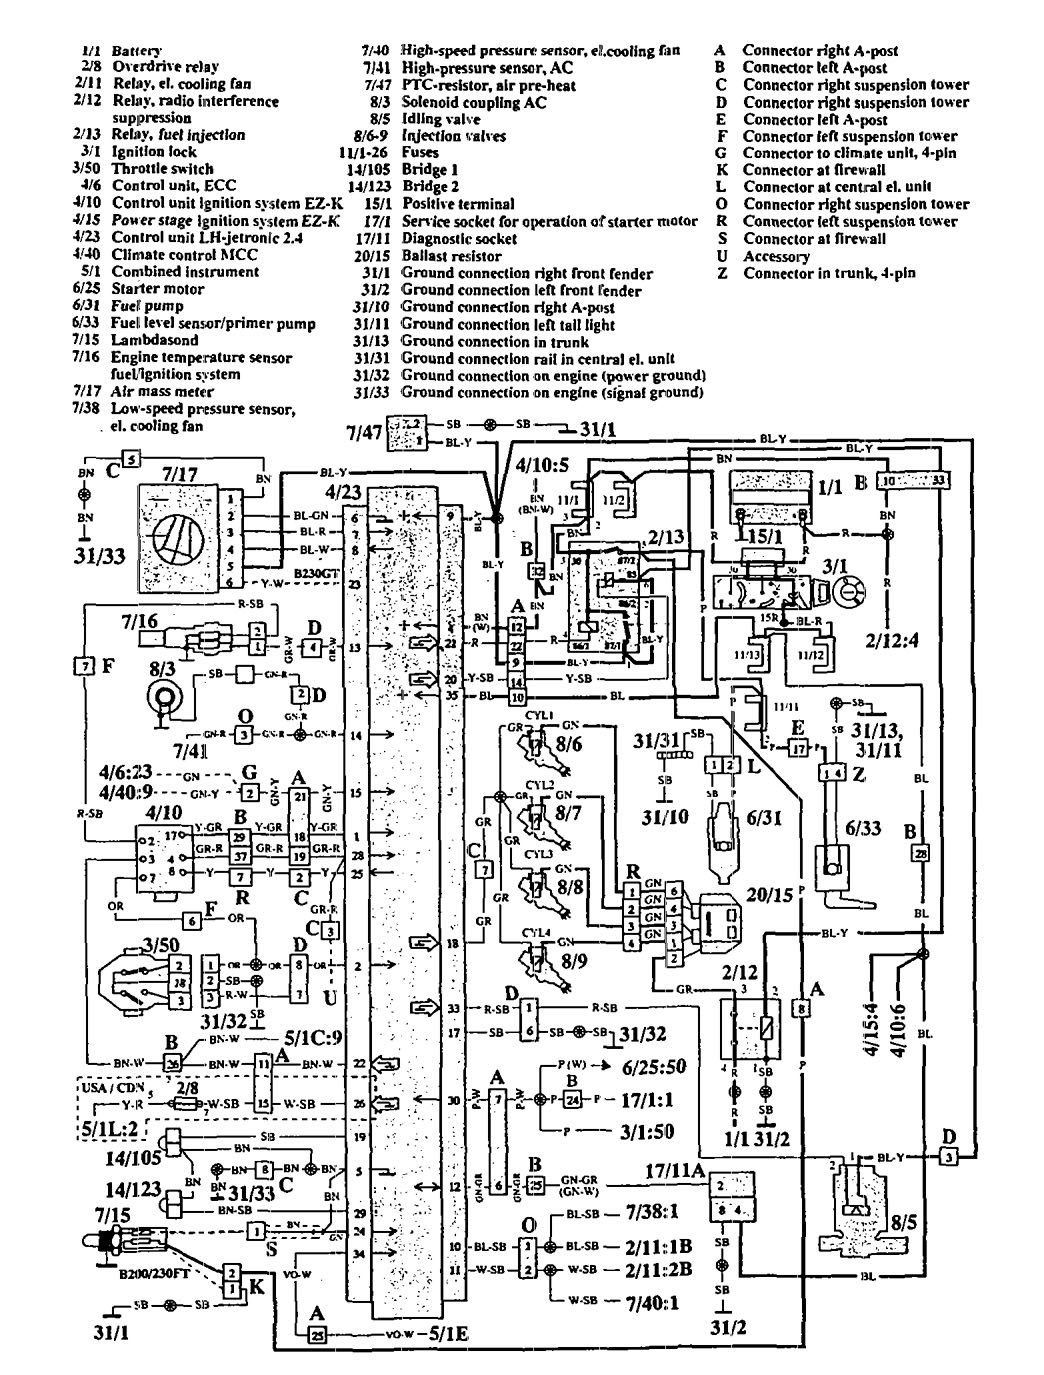 Wiring Diagram Volvo 940 Radio : Volvo stereo wiring diagram jeep grand cherokee